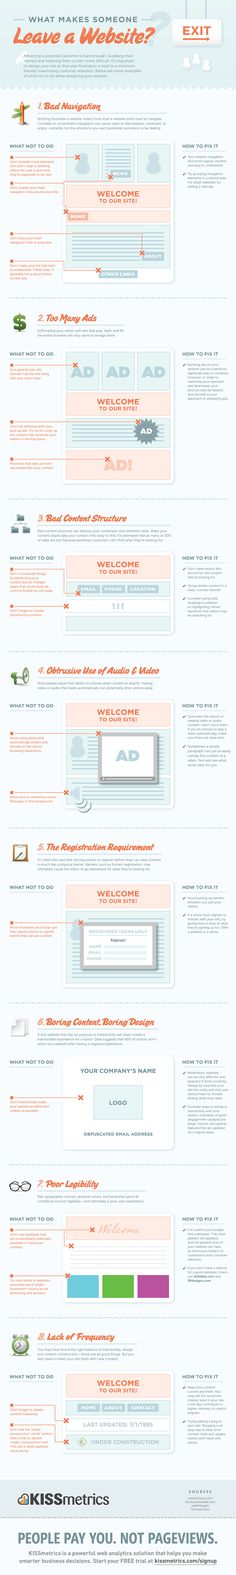 What Makes Someone Leave A Website? #Infographic #website #web